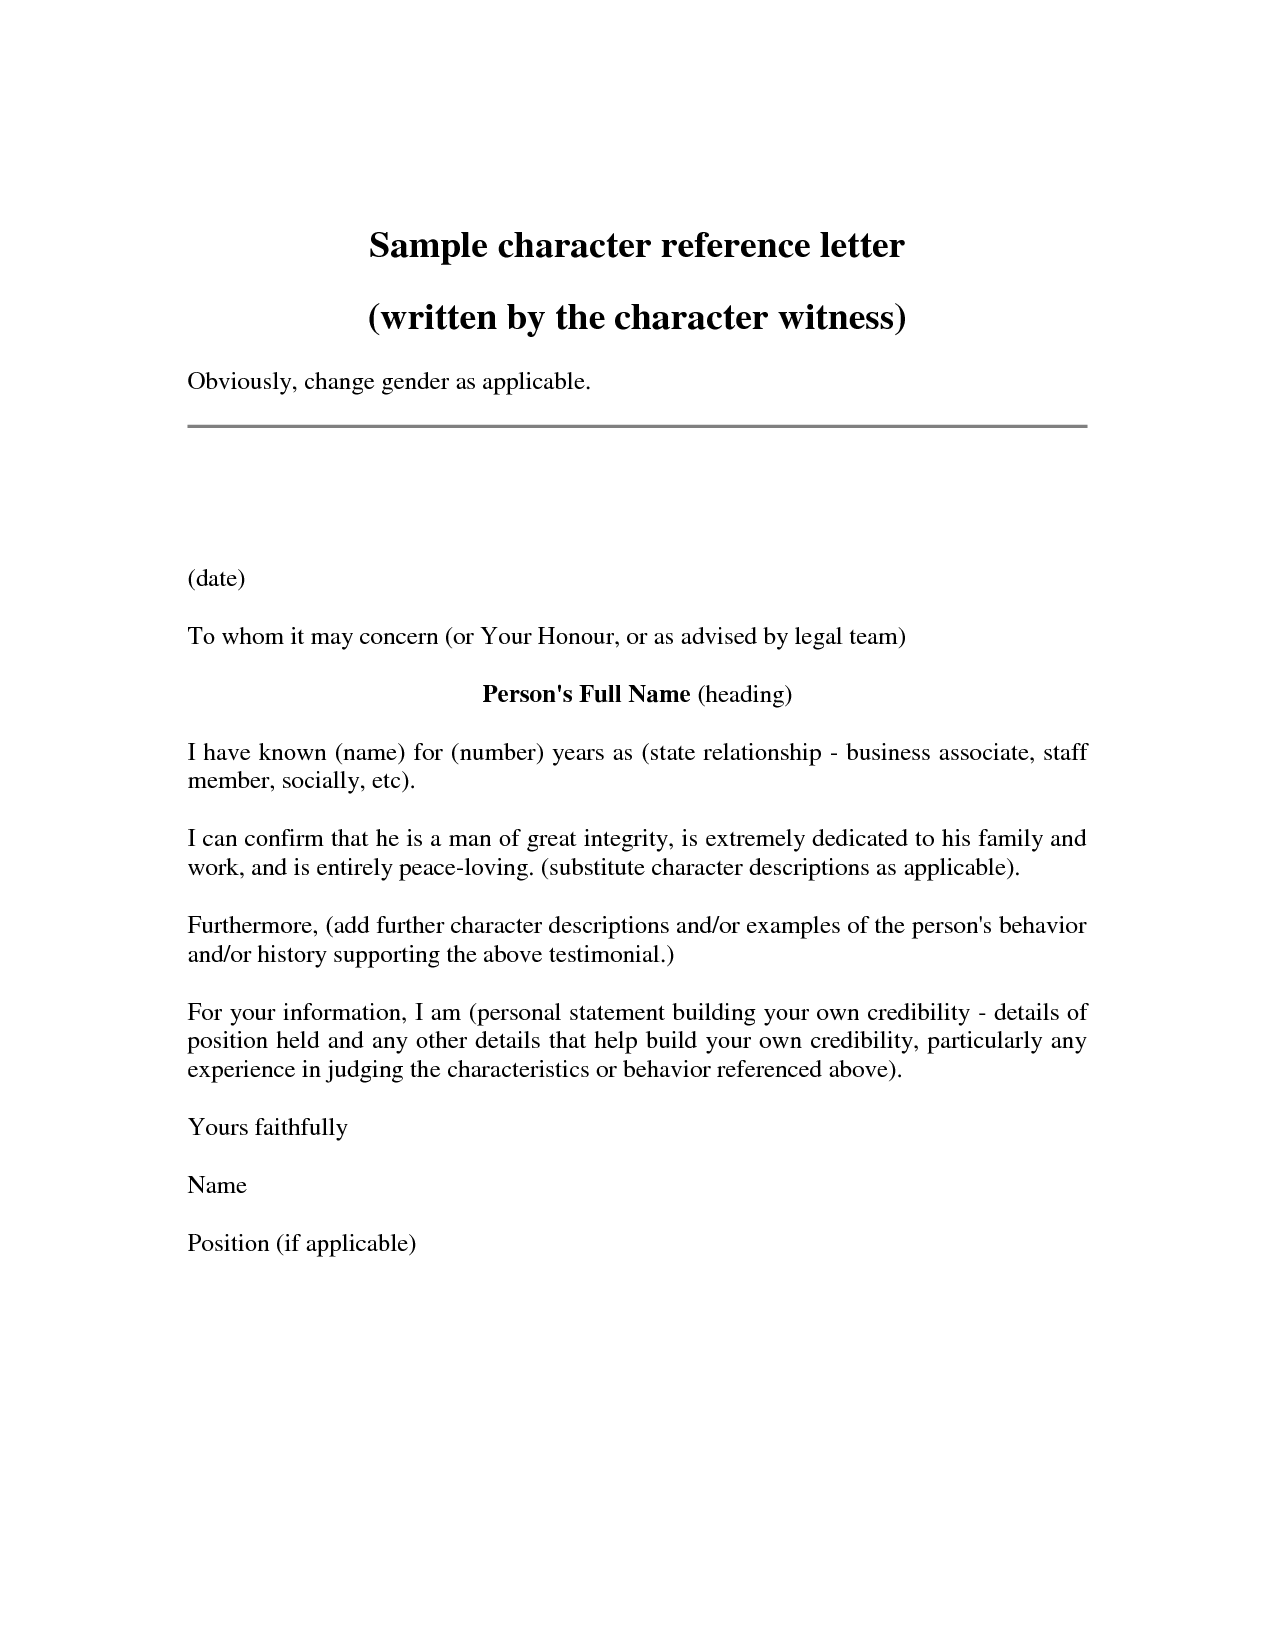 Exceptional Character Letters For Court Templates   Google Search Inside Sample Character Reference Letter